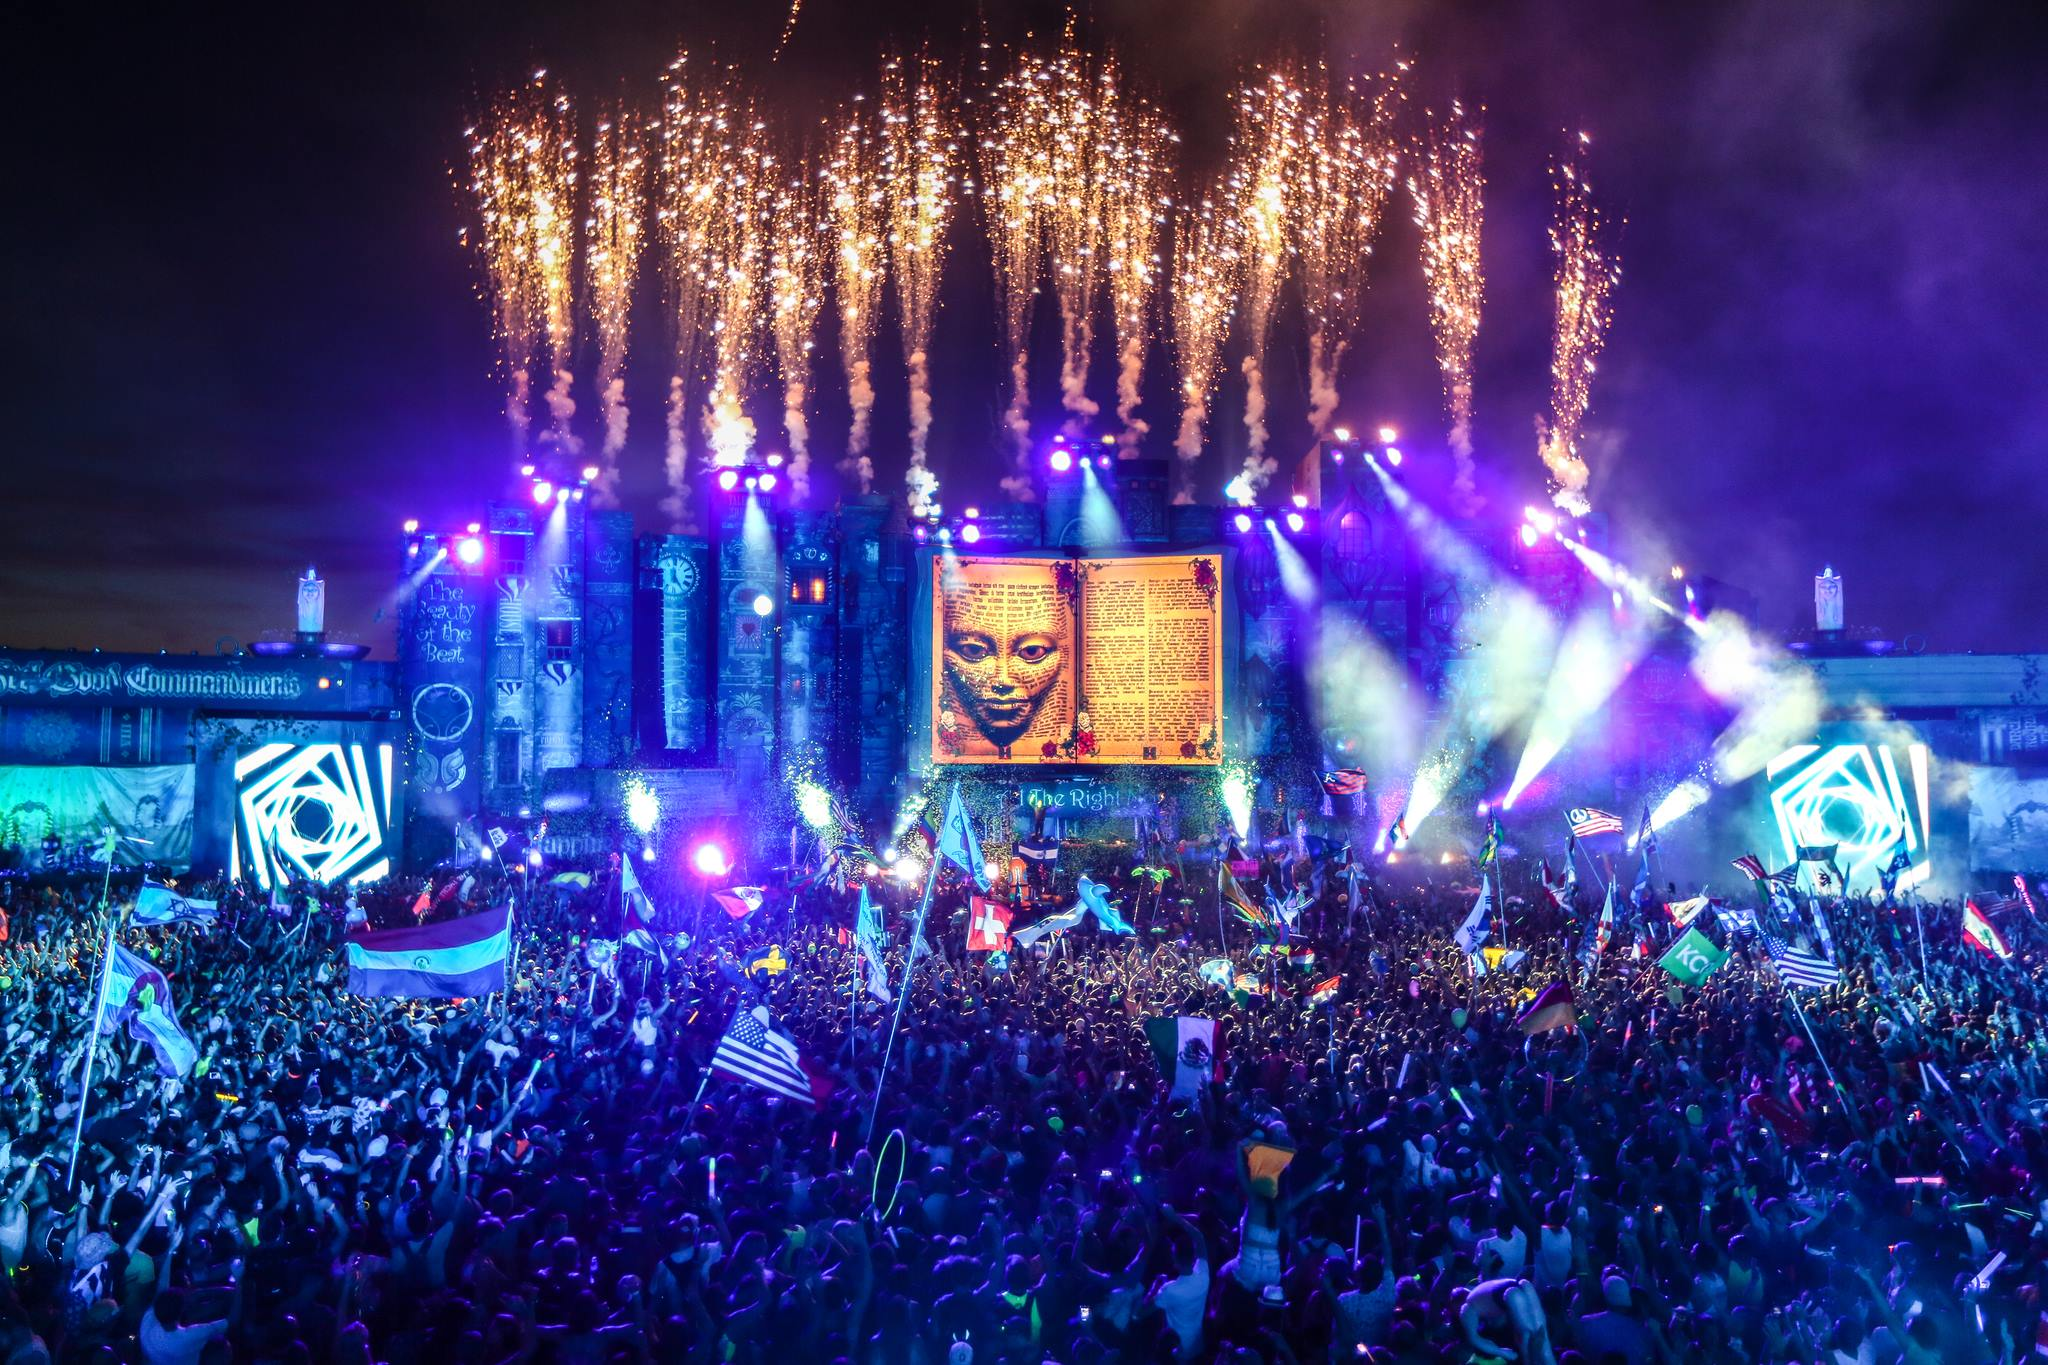 Loss Of Use Coverage >> Mainstream Media's Illegal & Twisted Coverage Of TomorrowWorld   Your EDM